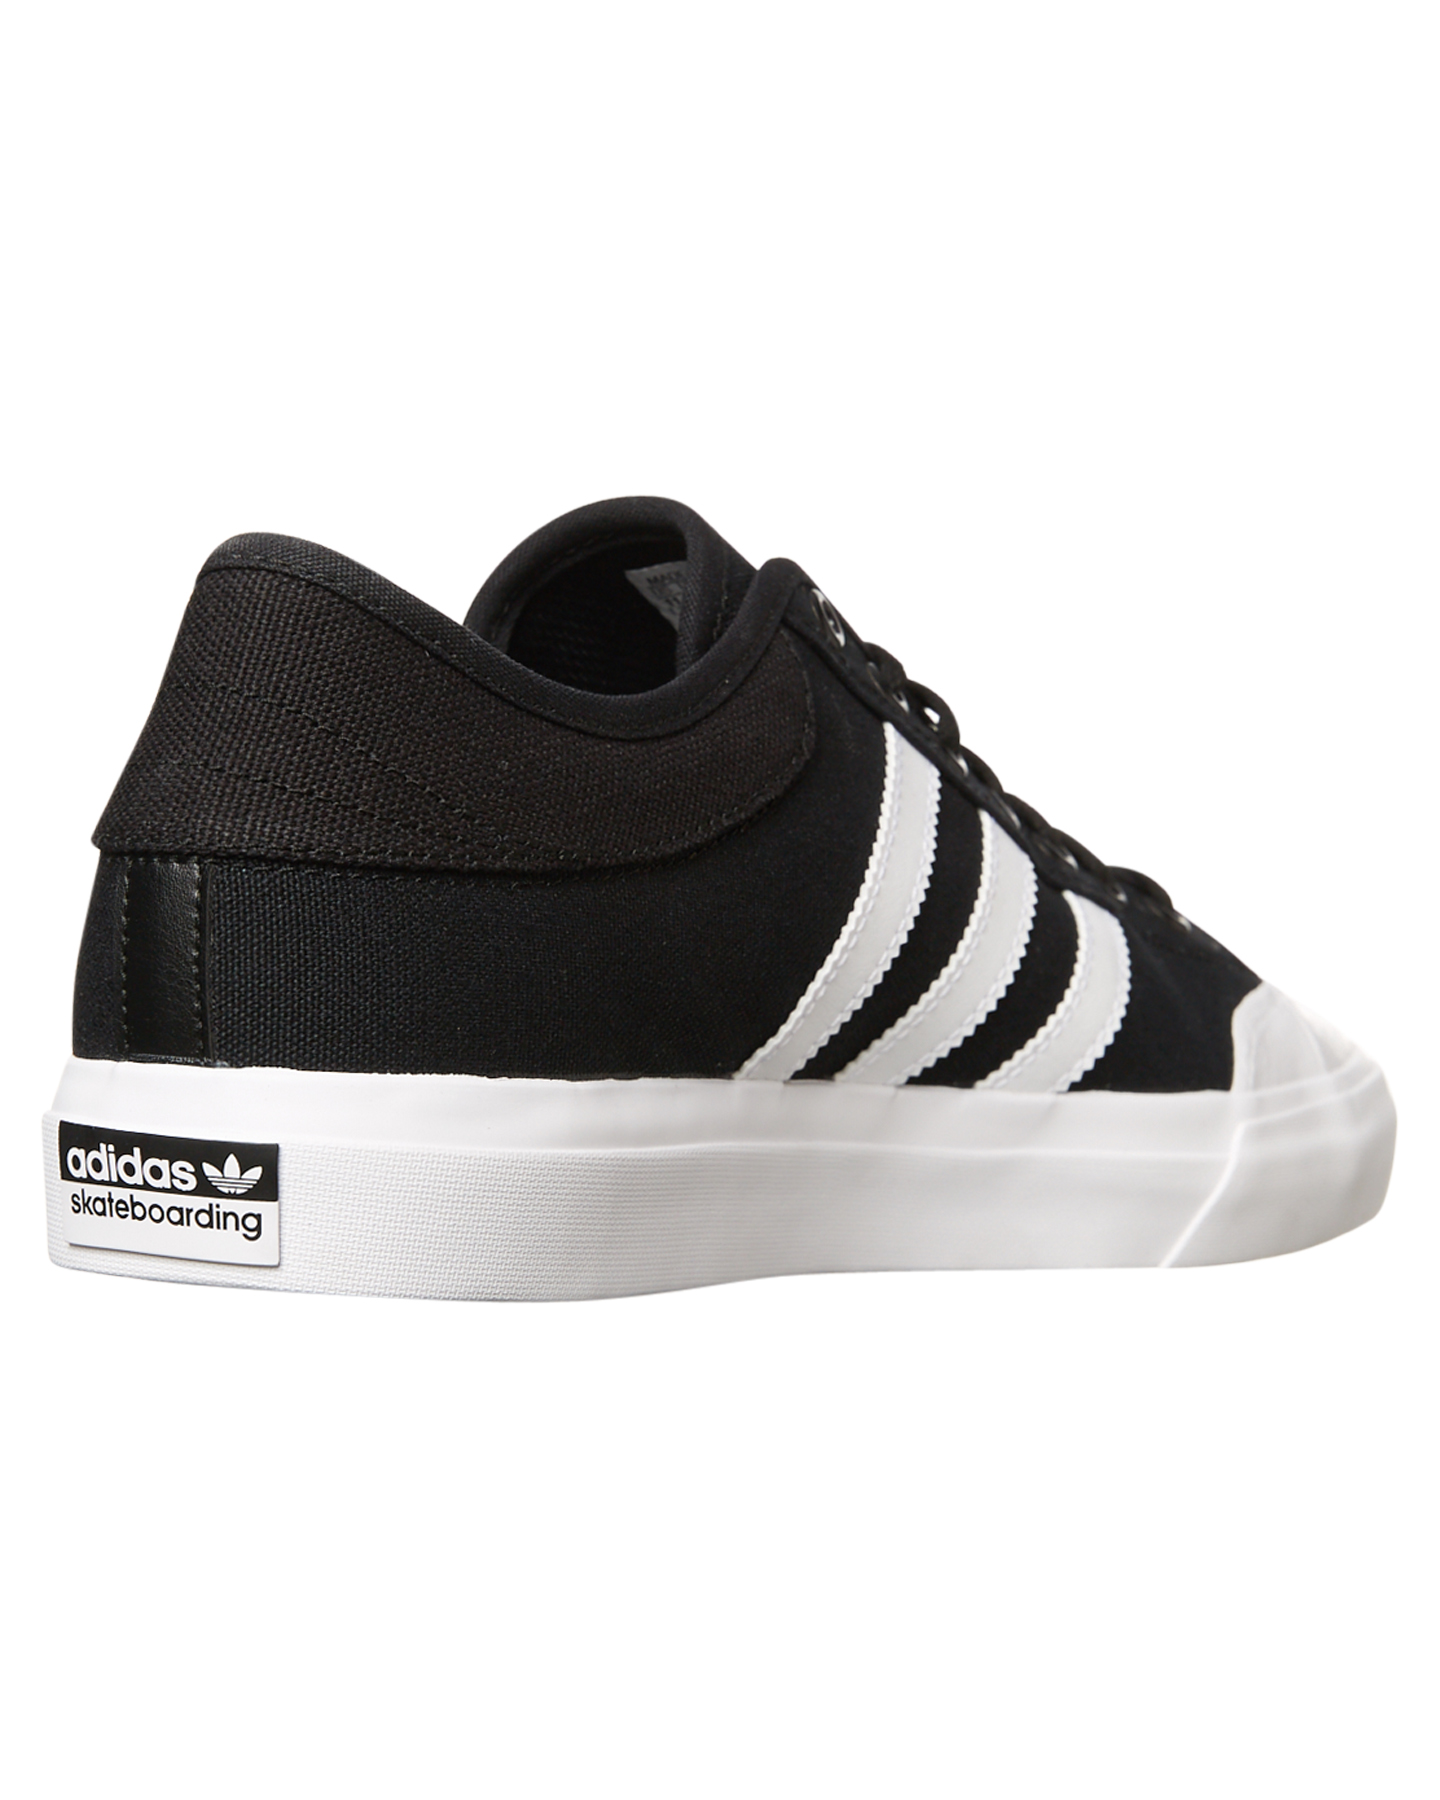 Adidas Mens Matchcourt Shoe - Black White Black | SurfStitch